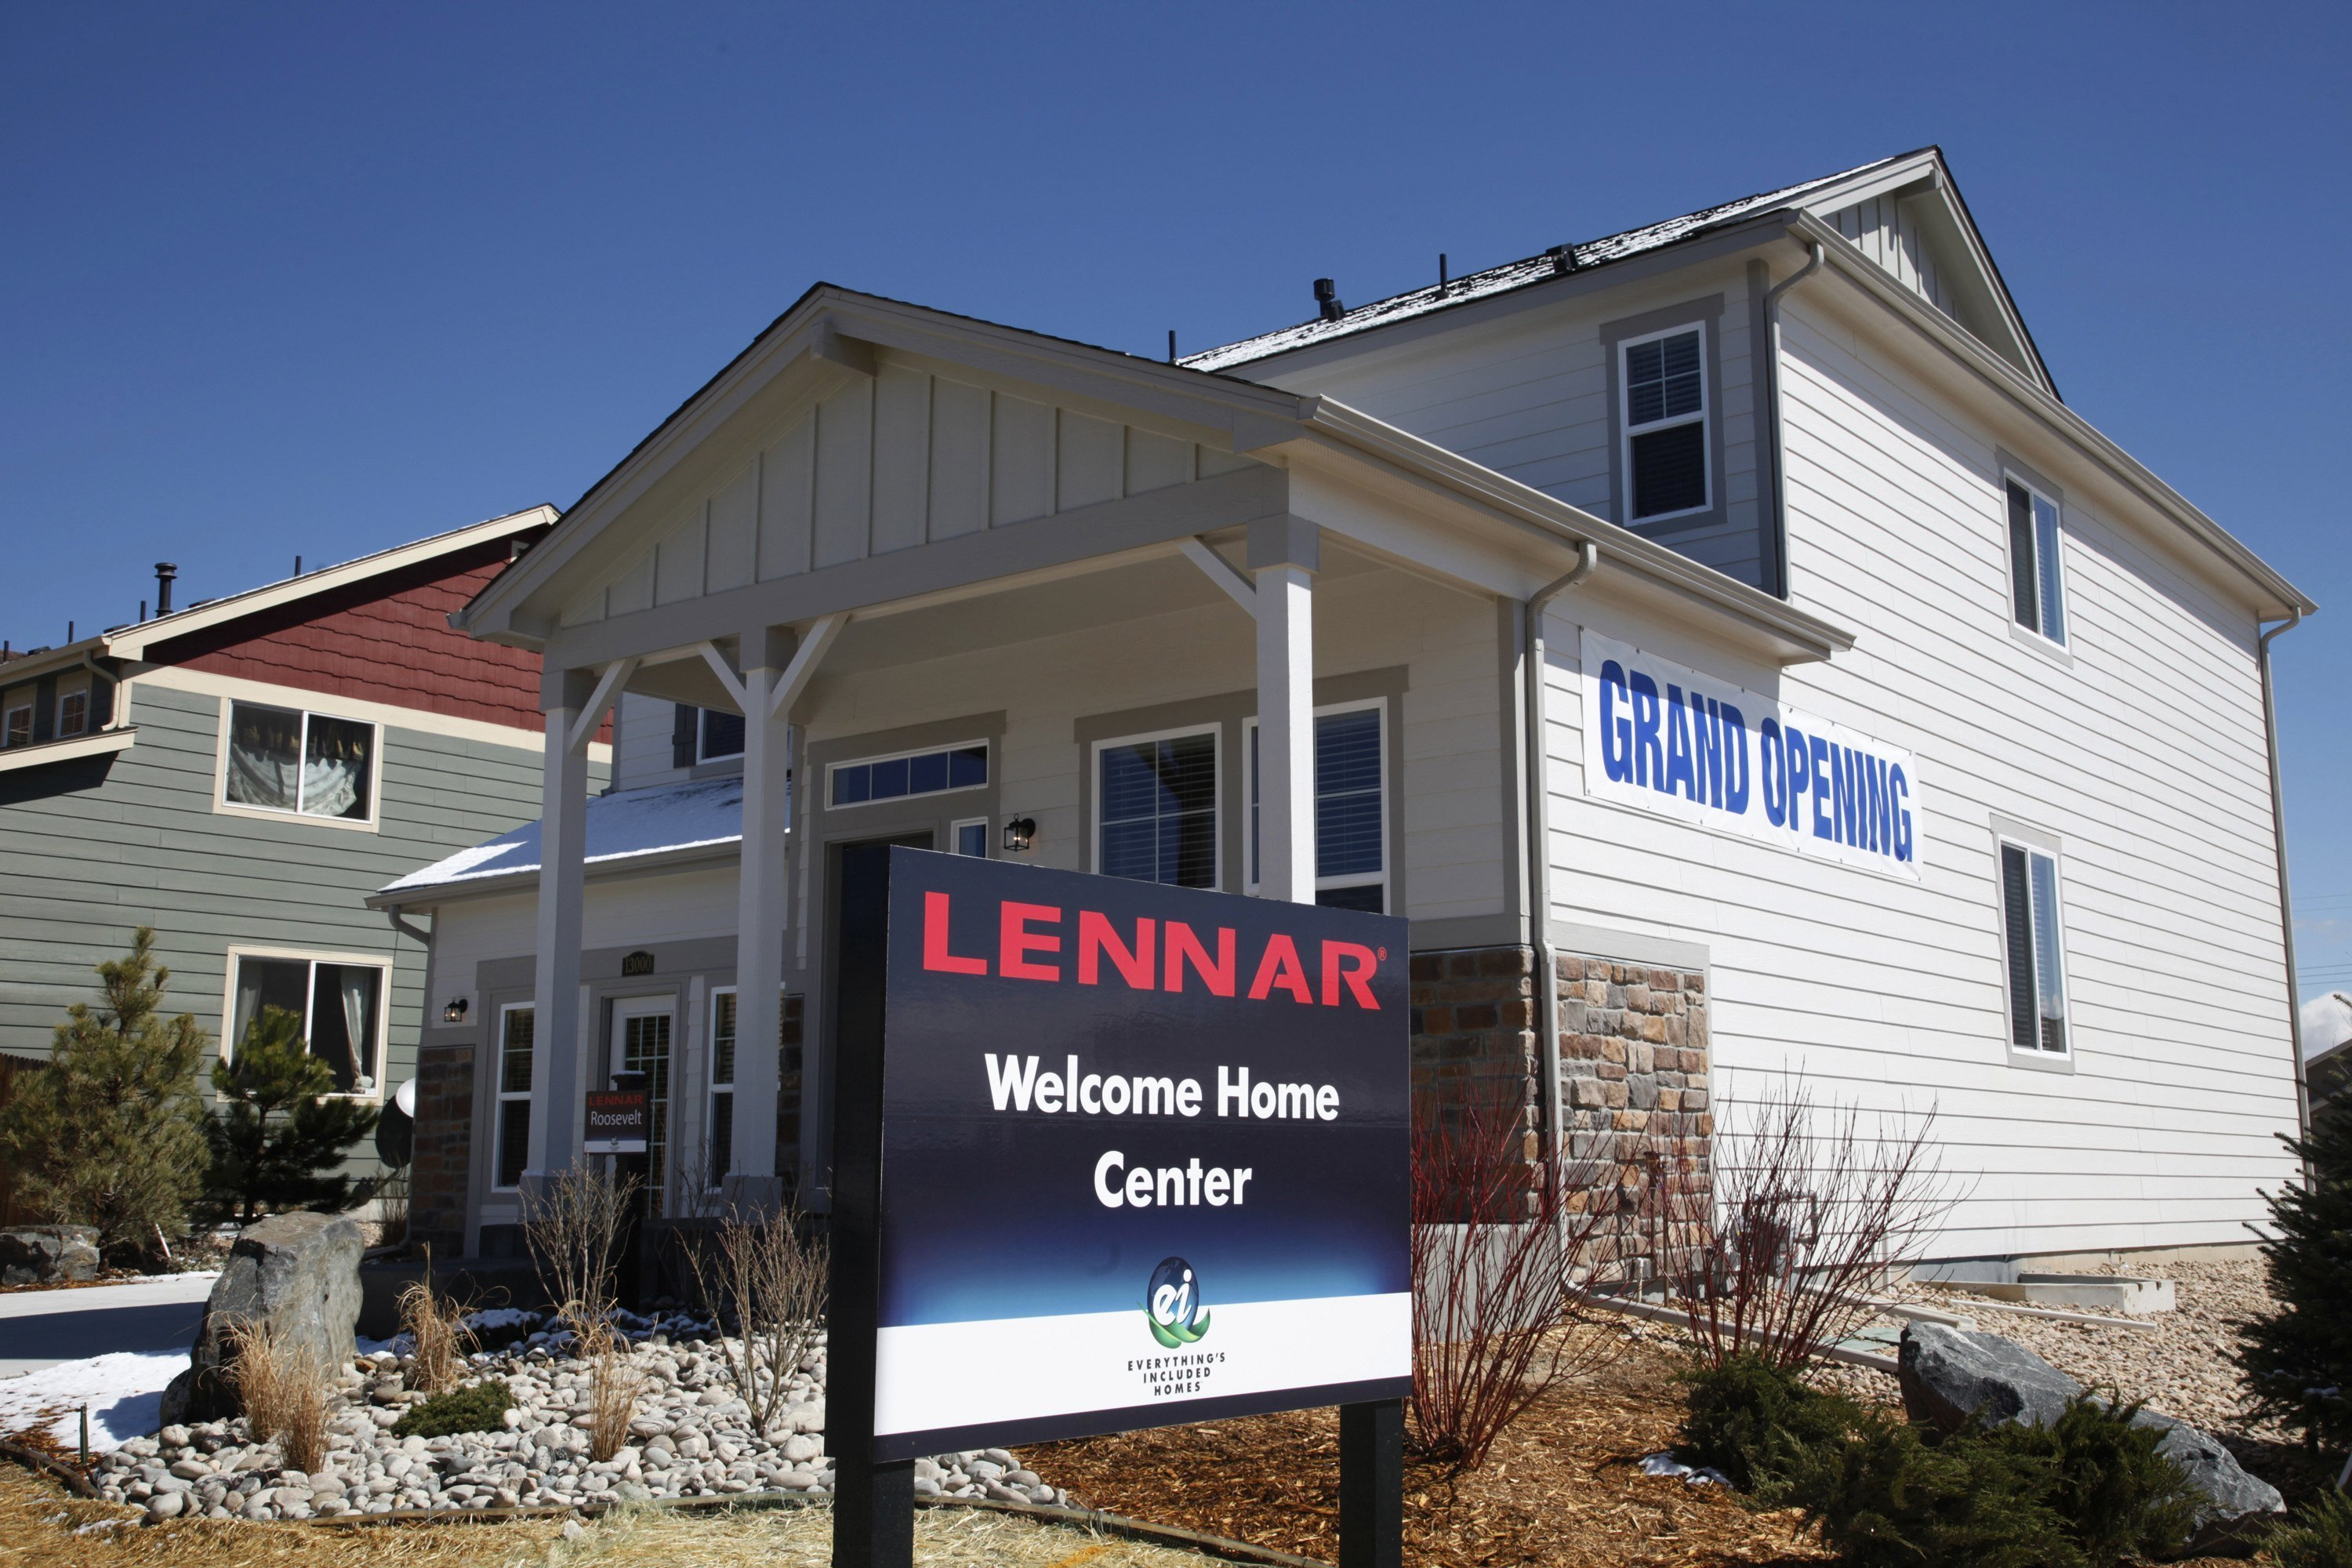 Soothing Merger Nearly Lennar Poised To Help Lennar Homes Reviews Maryland Lennar Homes Reviews Tampa February Could Bode Well Lennar Largest houzz-03 Lennar Homes Reviews